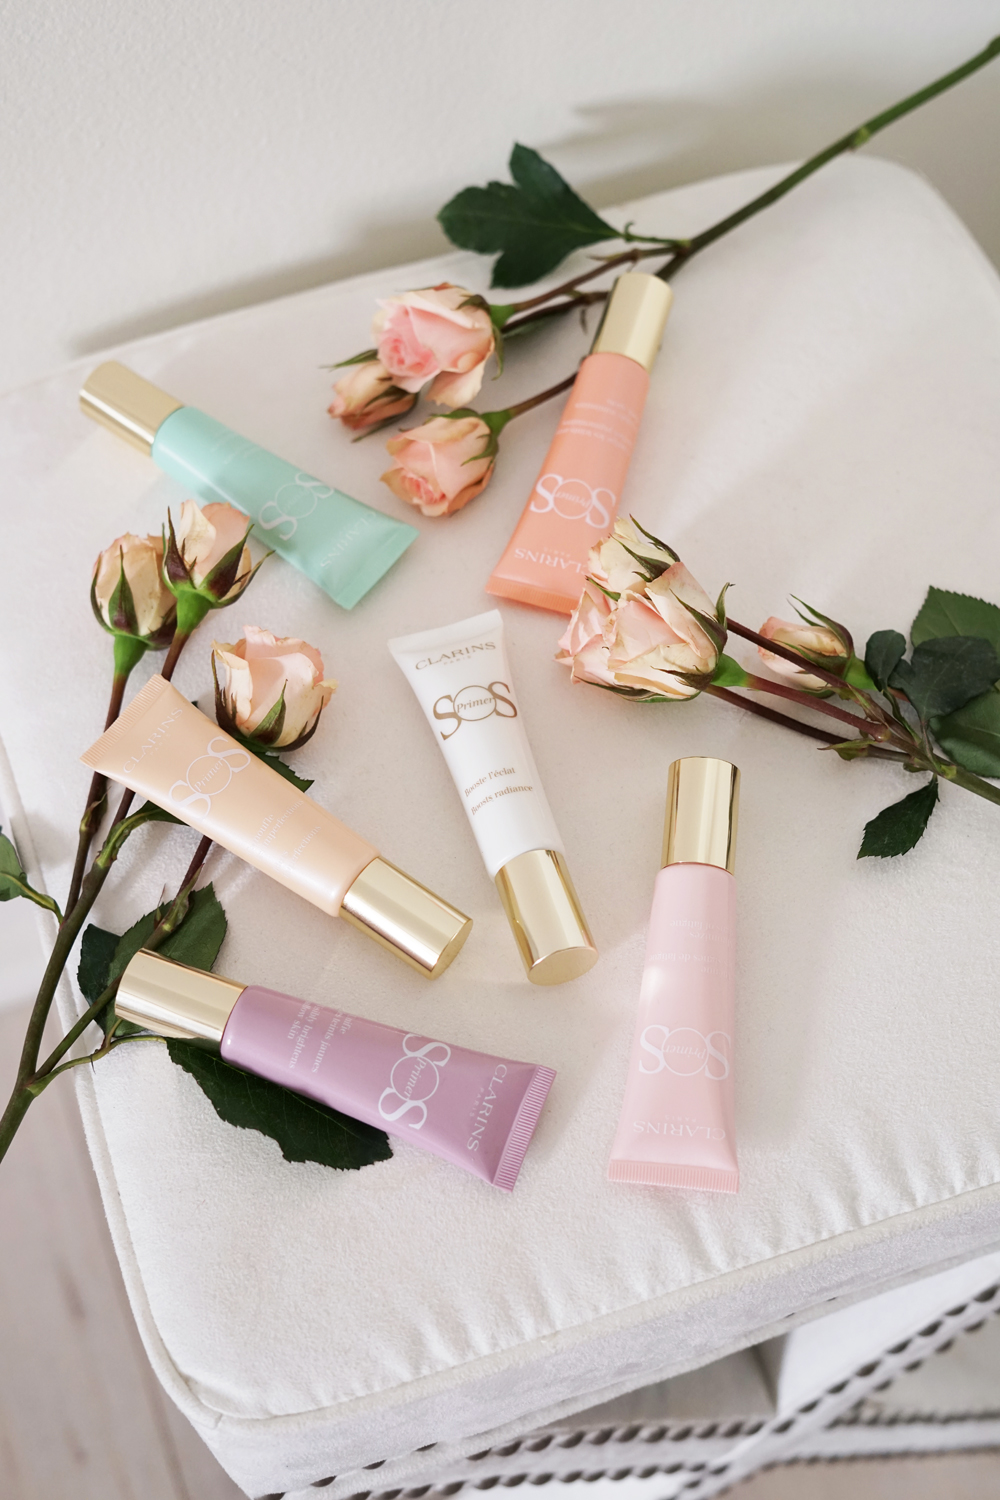 06clarins-sos-primers-spring-pastel-roses-beauty